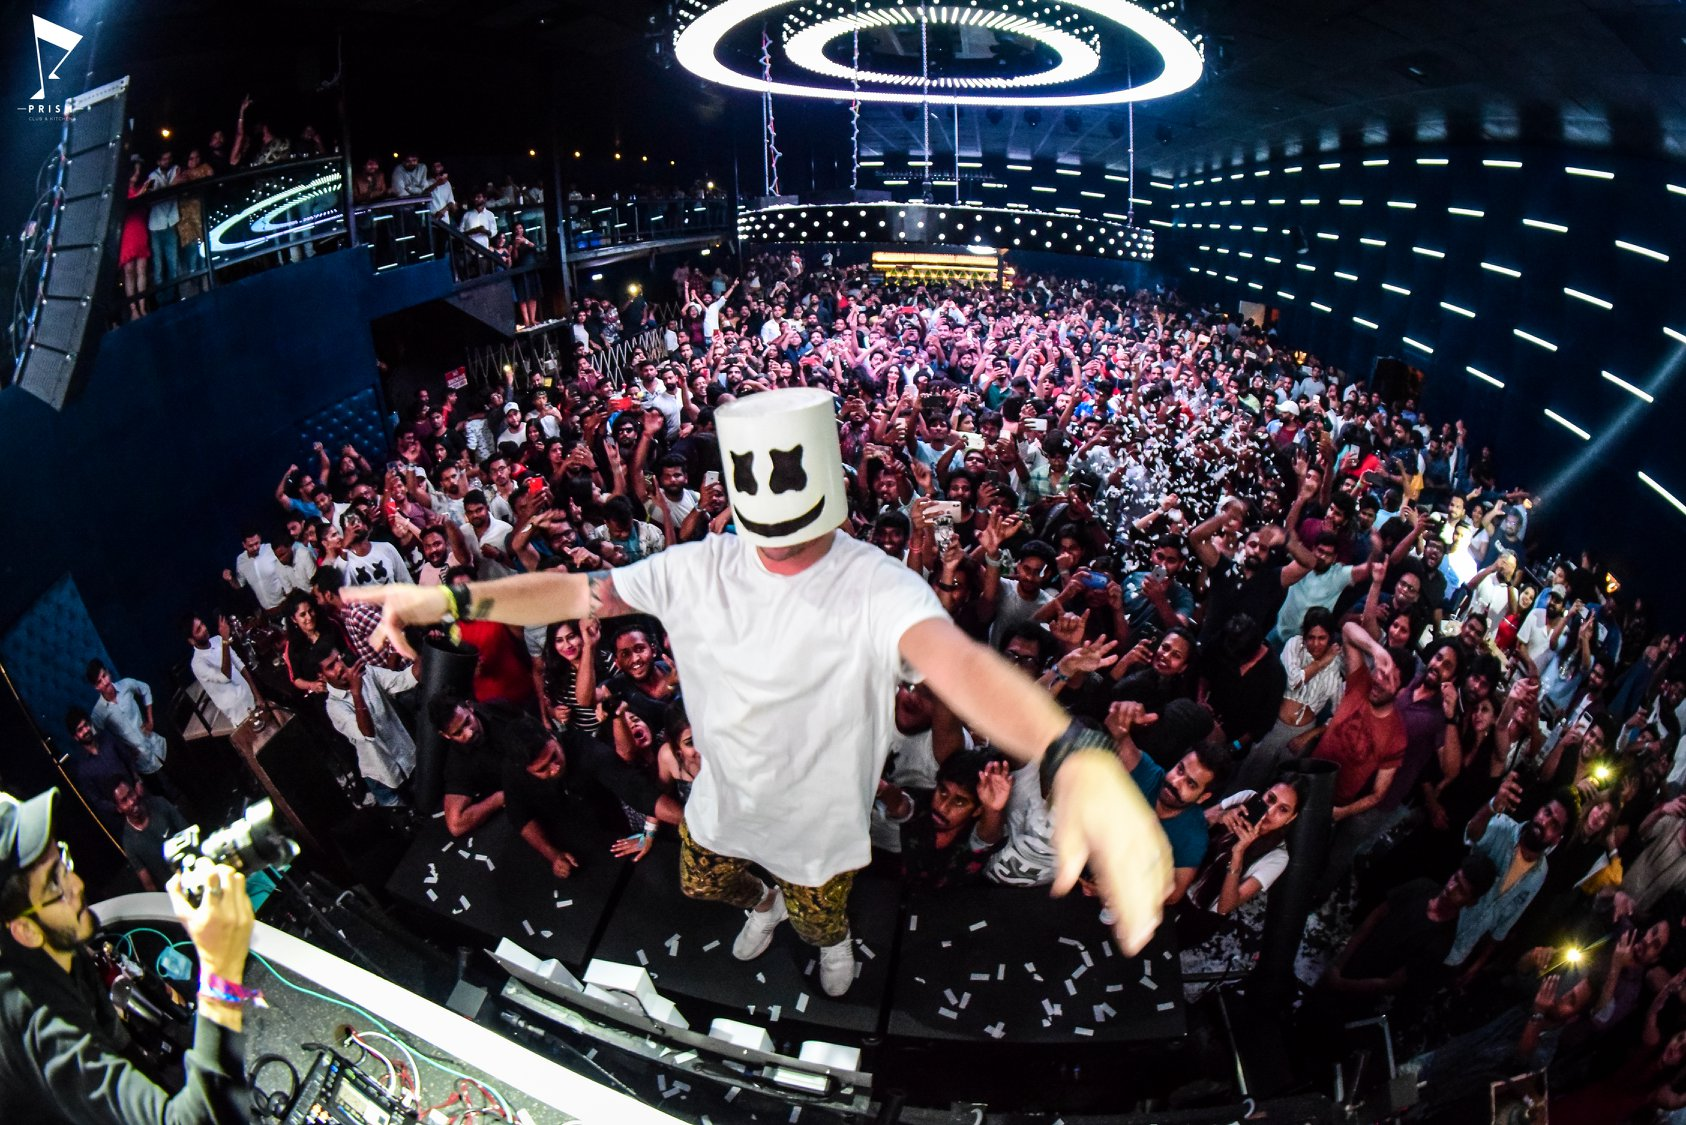 Vh1 Supersonic marshmello after party